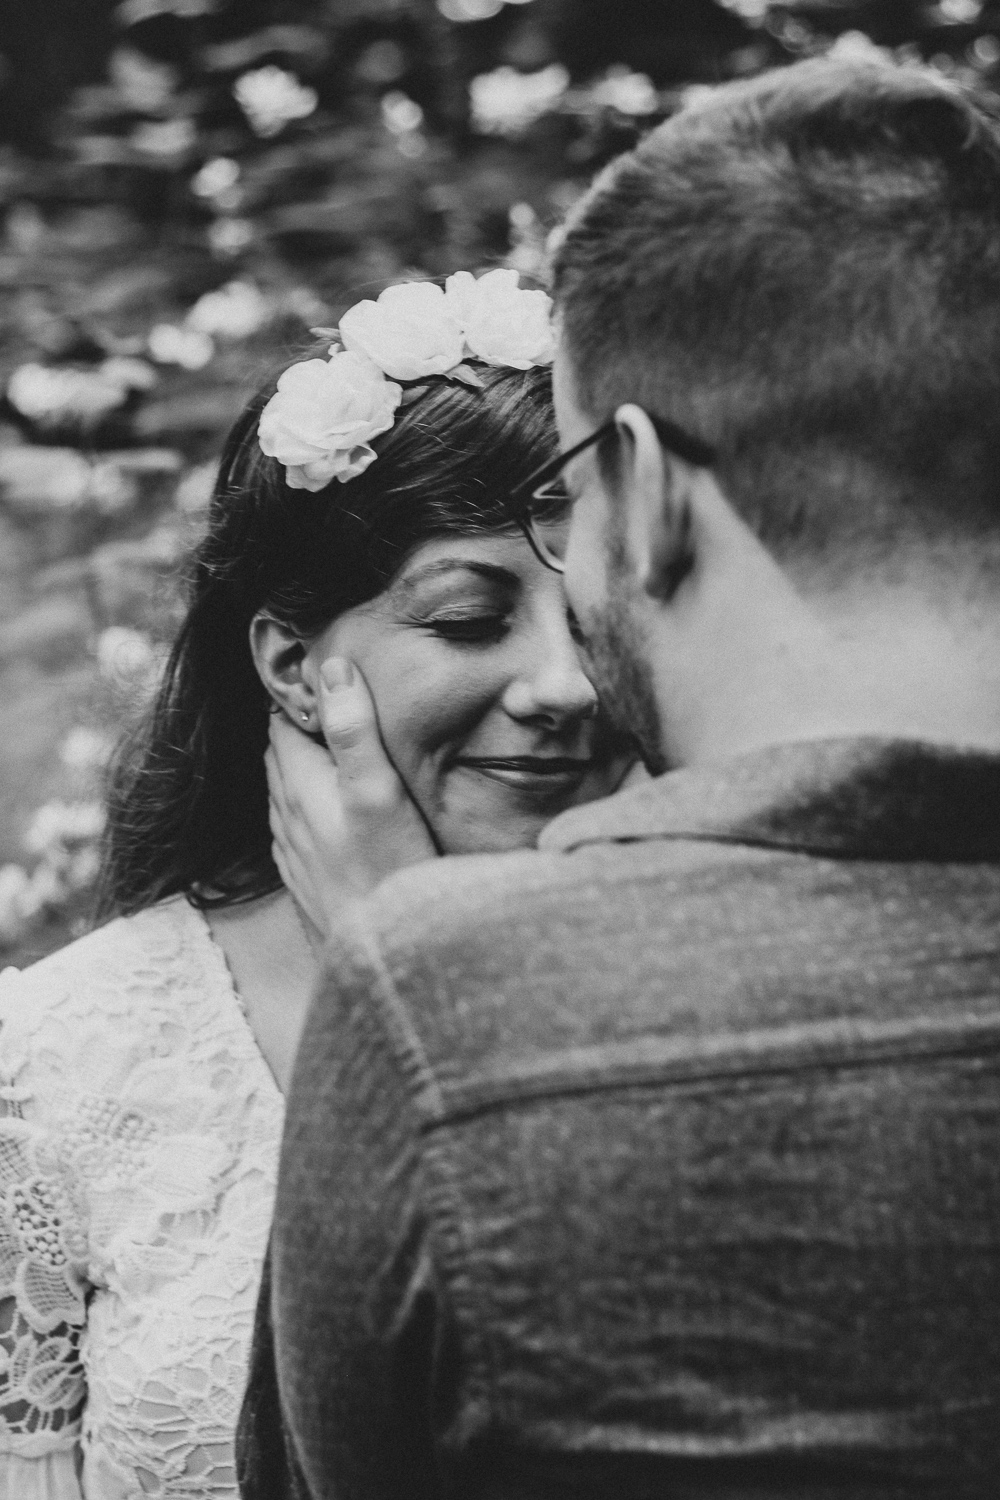 Portland_Oregon_Elopement_Photography_KeltikSean5.jpg